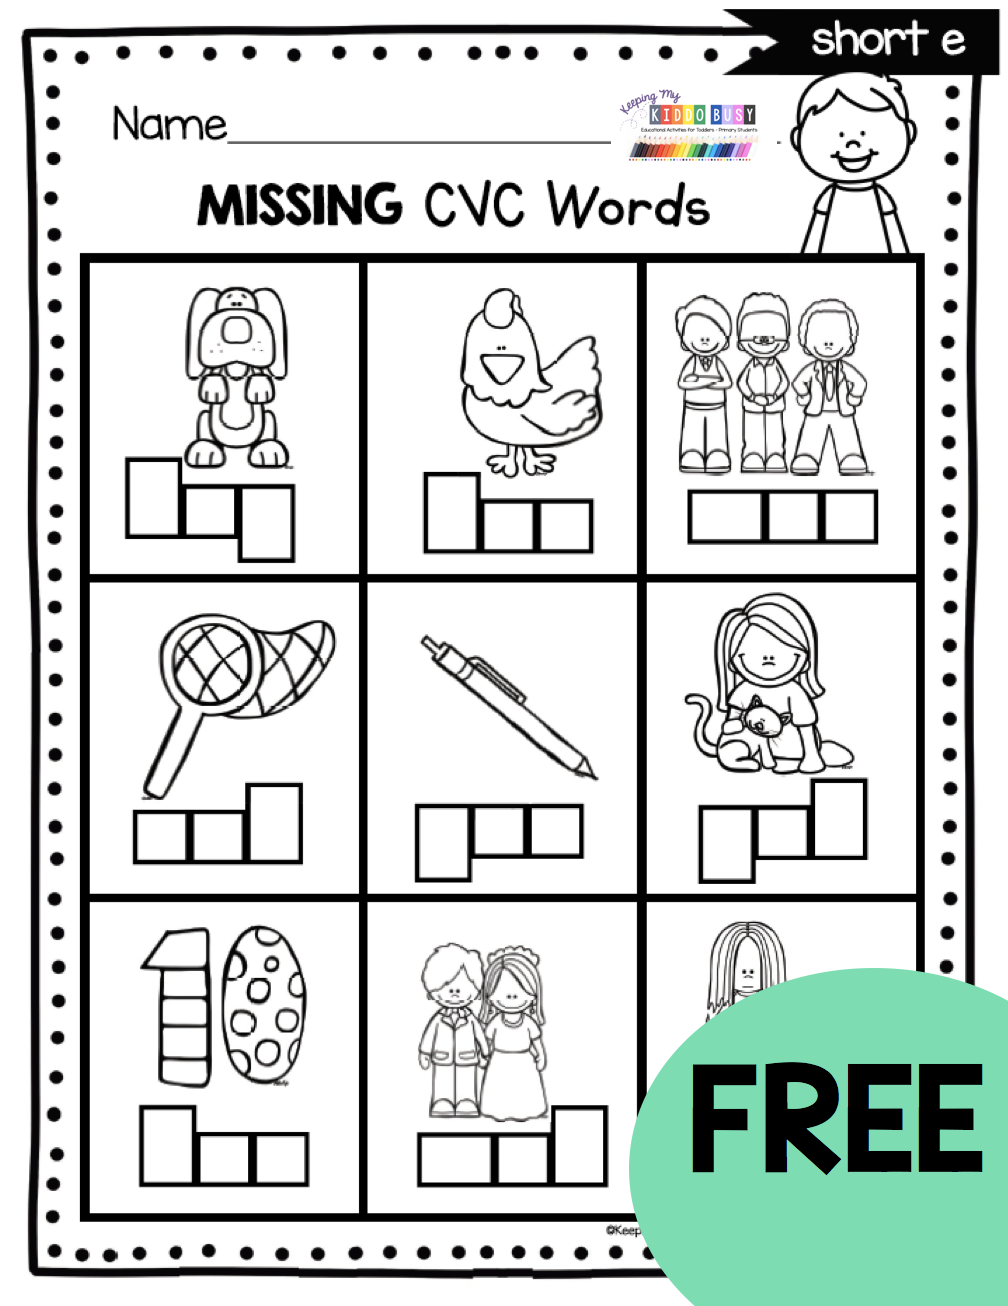 small resolution of FREE Phonics Worksheets and activities for teaching short vowels CVC words  kindergarten first grade   Cvc words kindergarten